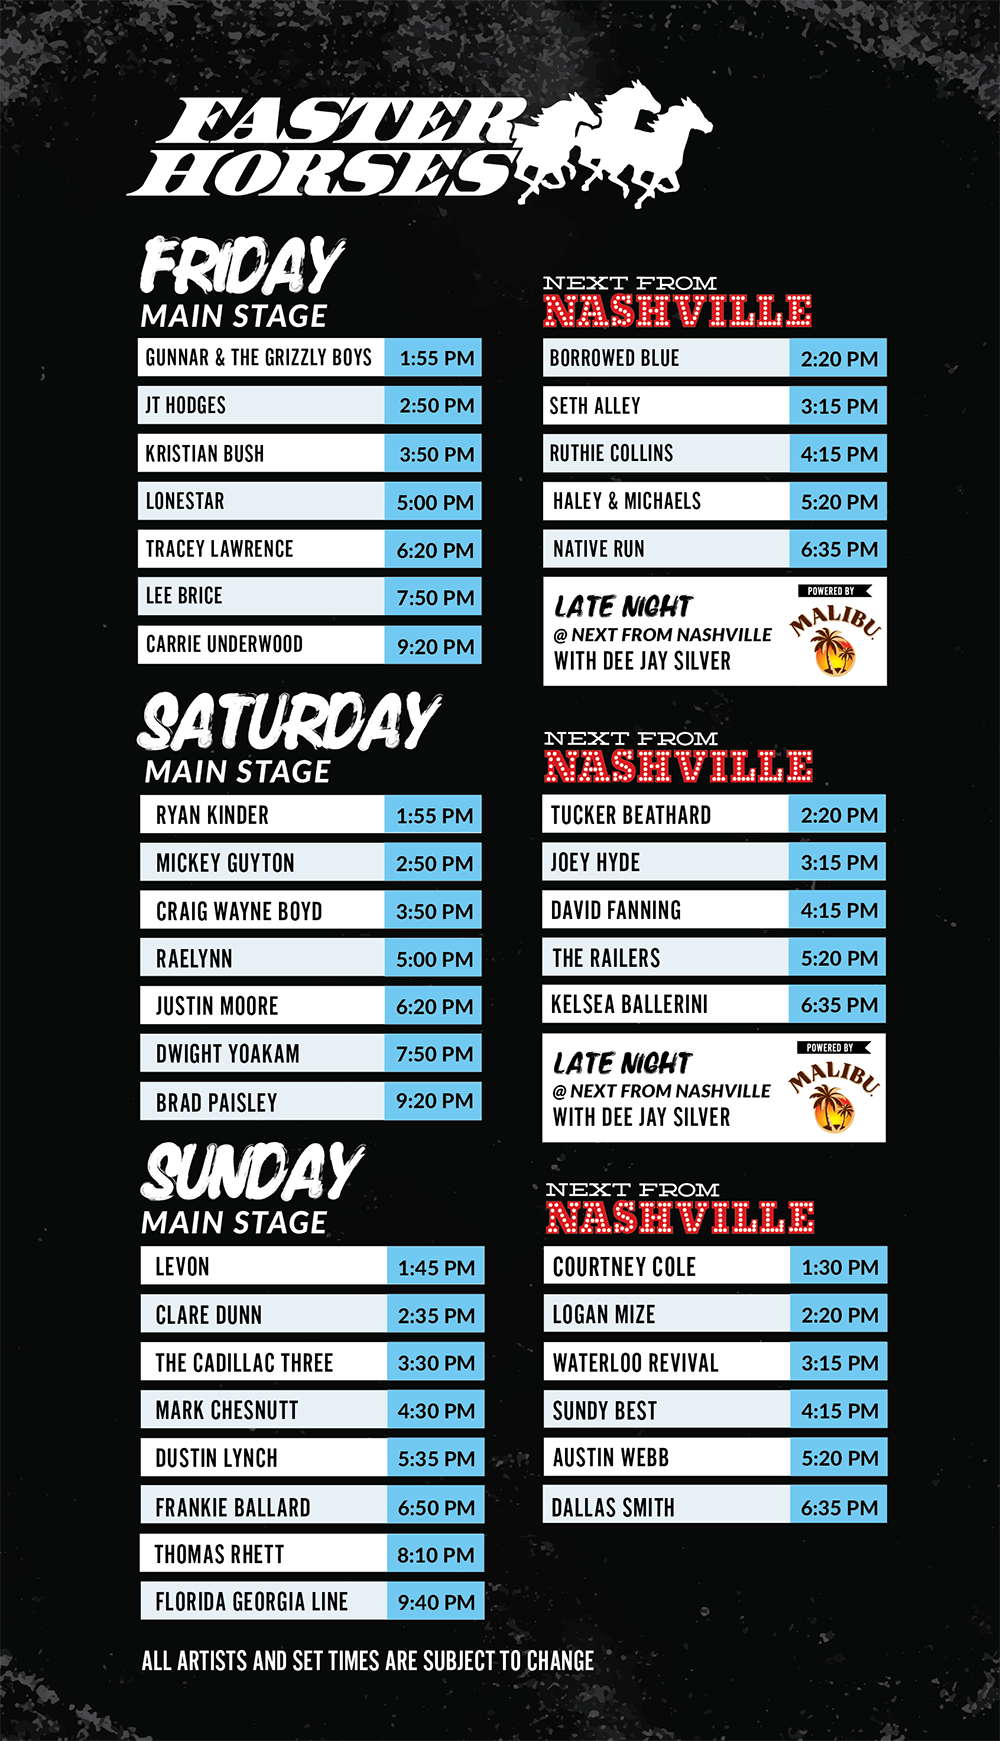 Faster horses 2014 lineup